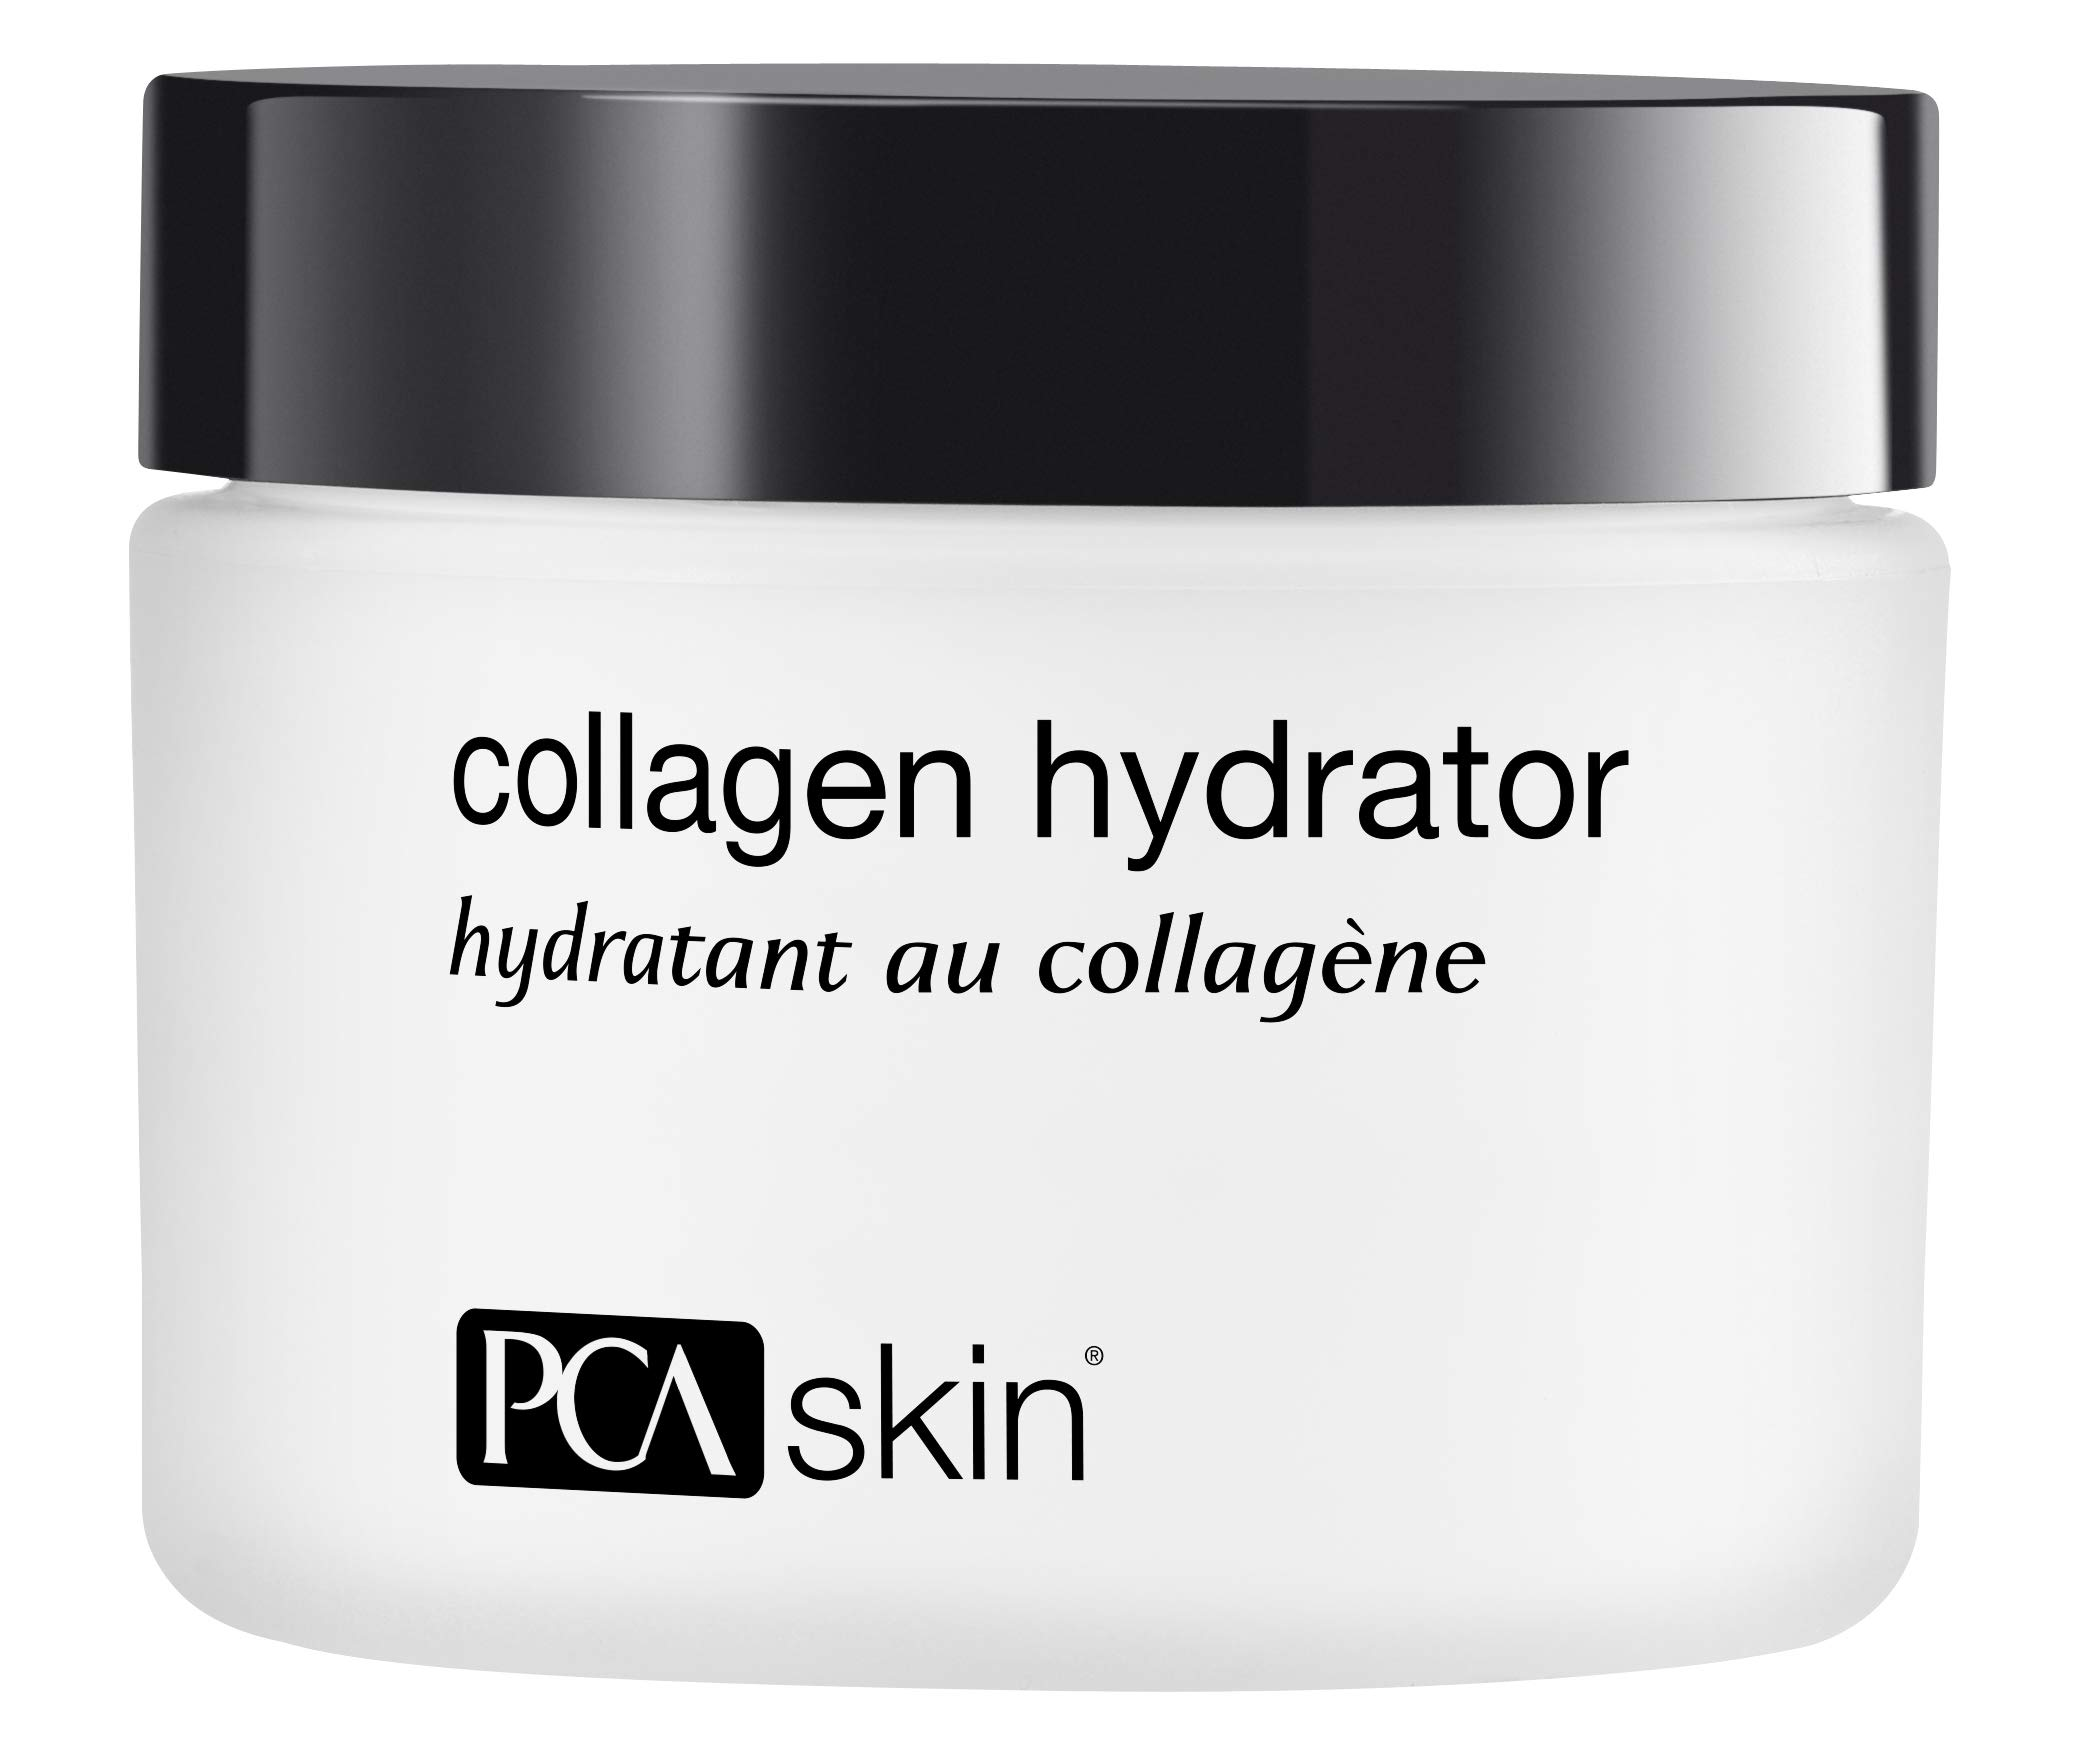 PCA SKIN Collagen Hydrator - Rich Antioxidant Face Moisturizer  for Dry / Mature Skin (1.7 oz)